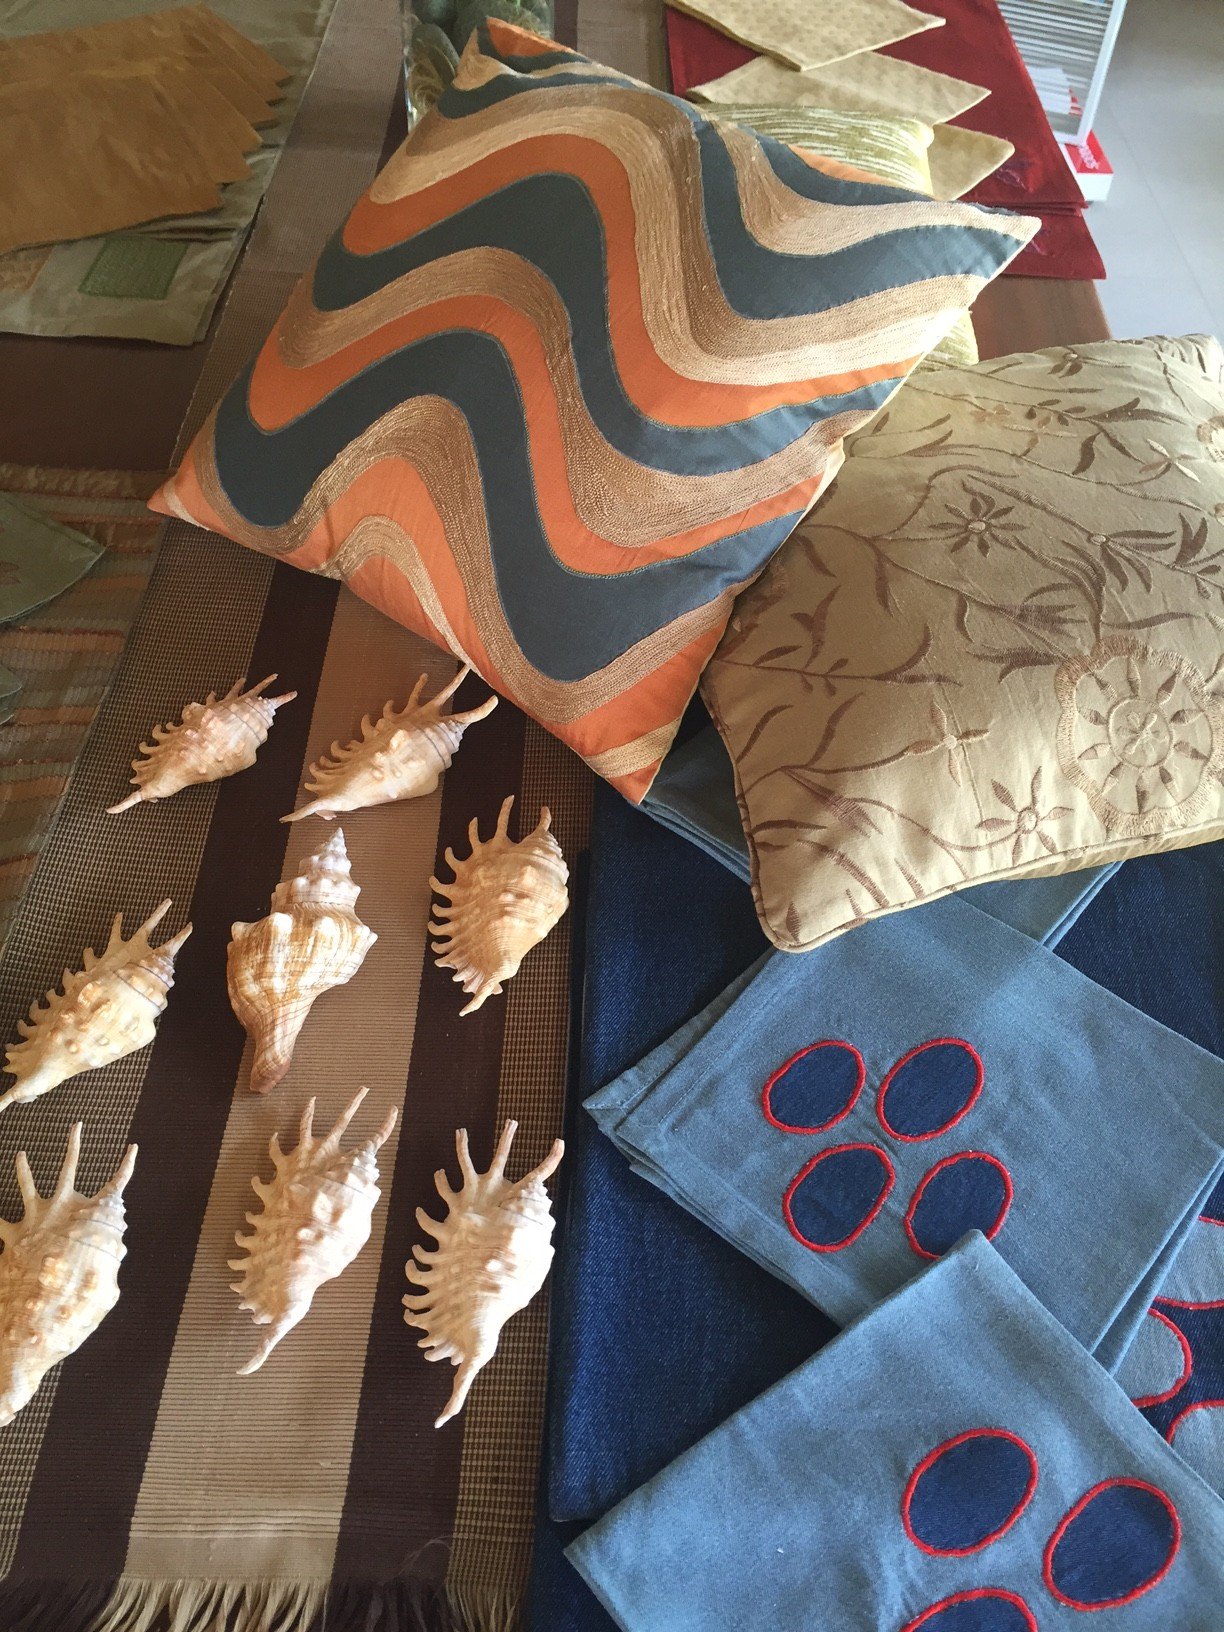 Some locally crafted items for the home